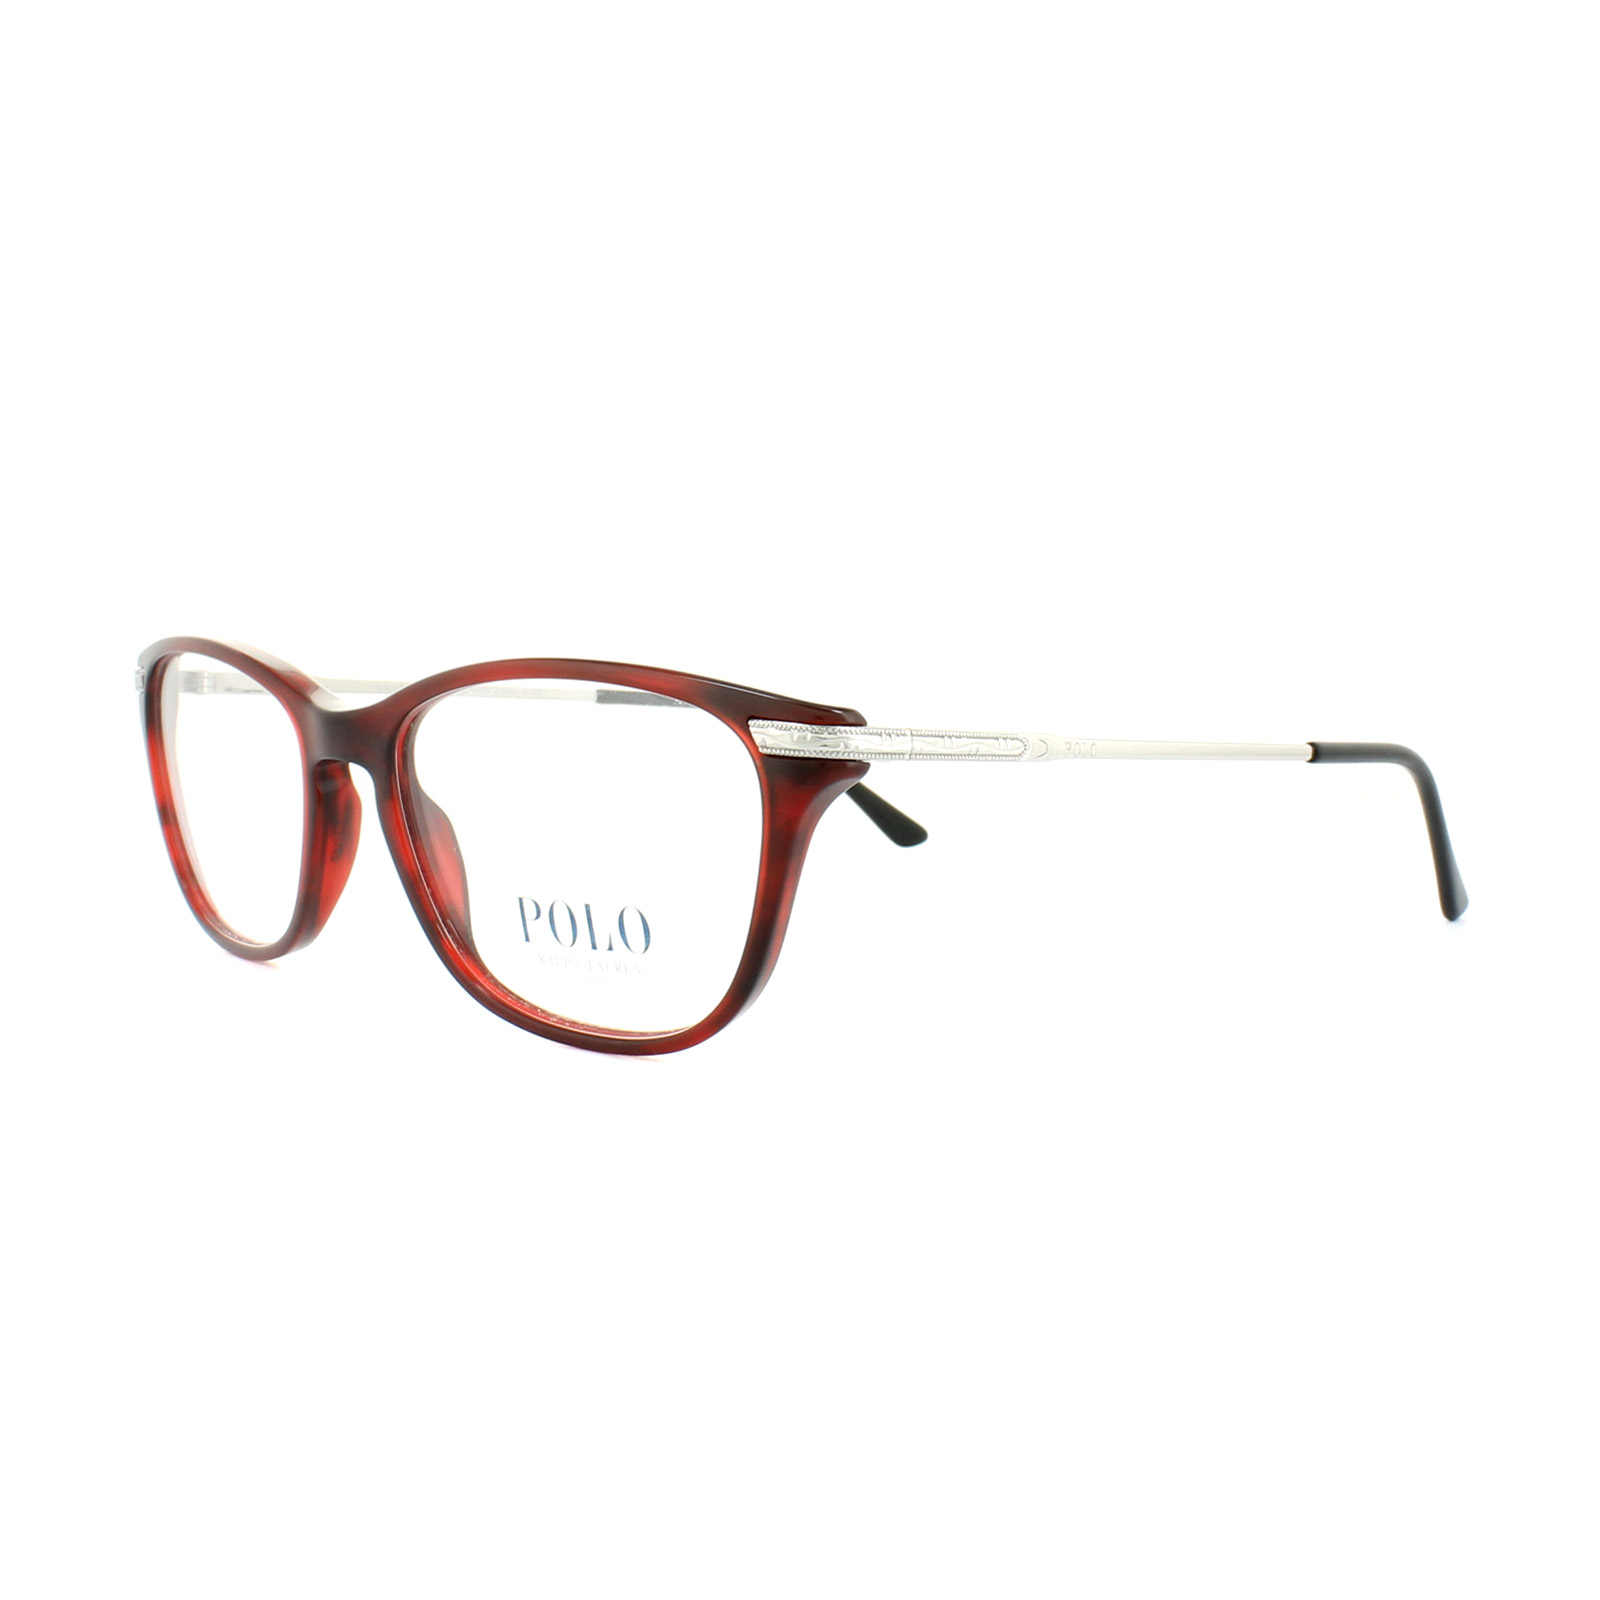 88656afa768 Sentinel Polo Ralph Lauren Glasses Frames PH 2135 5533 Havana Red Womens  53mm